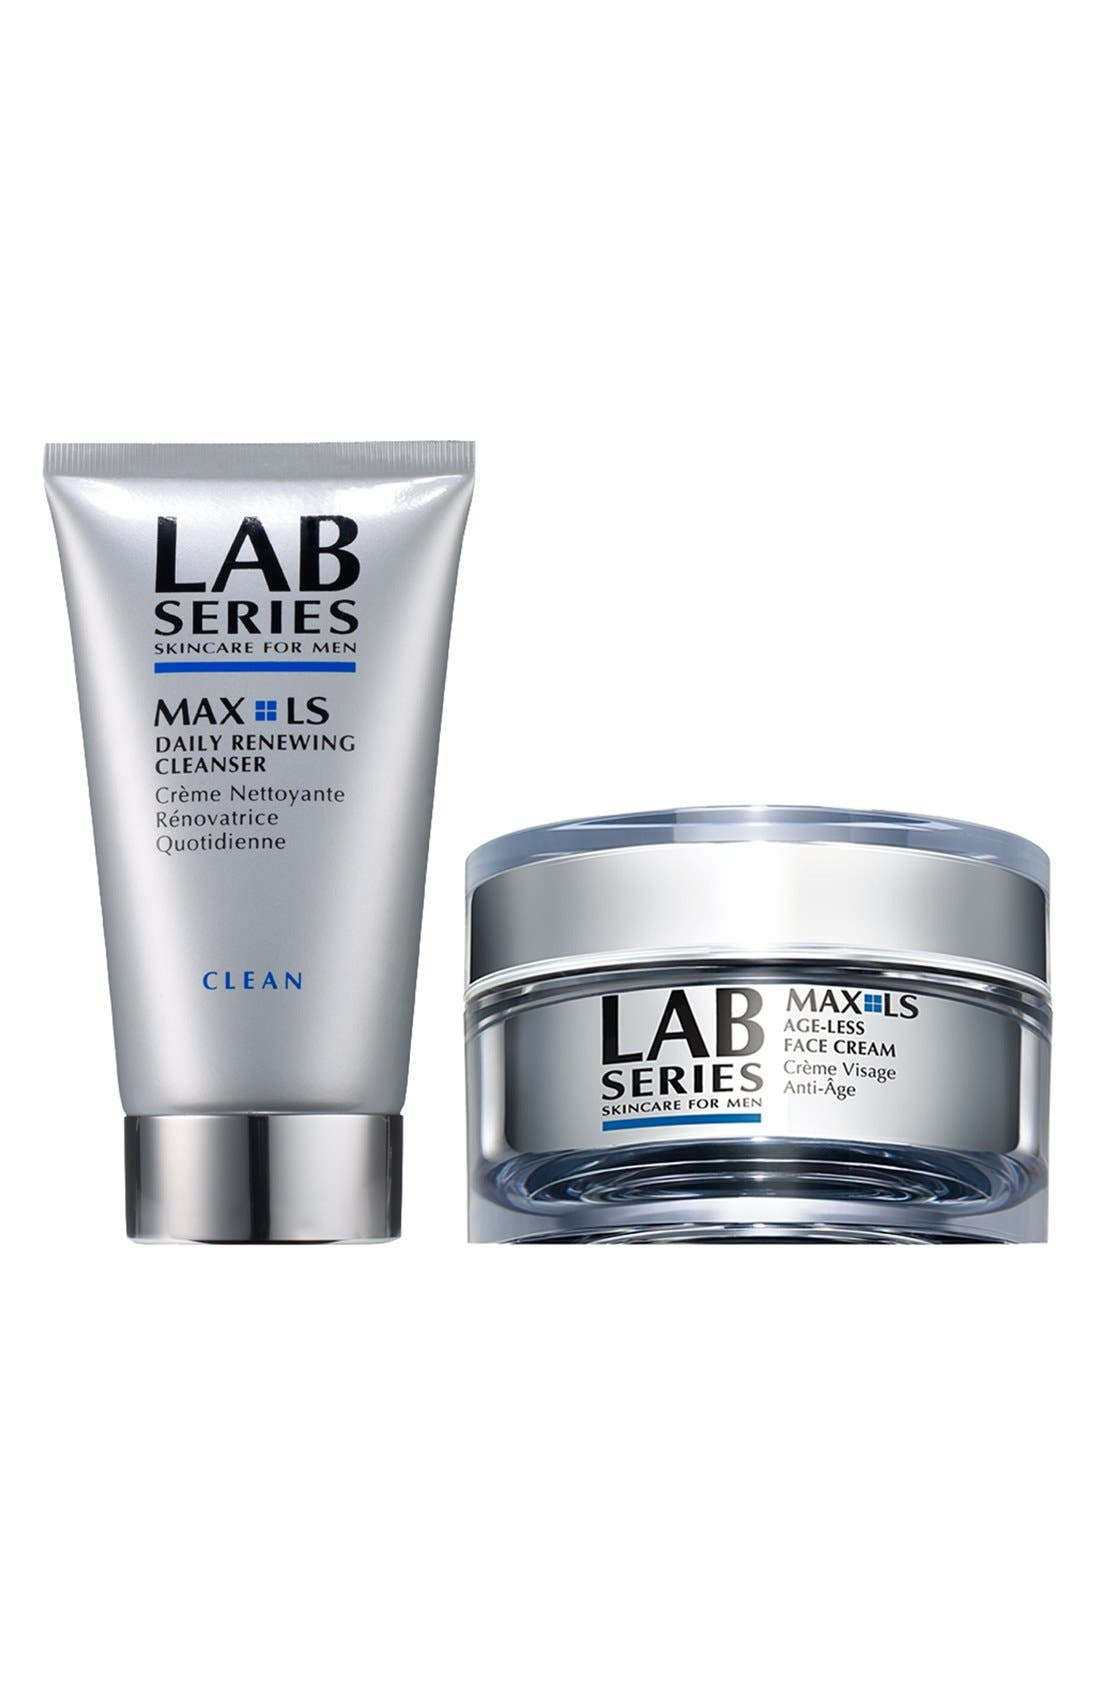 LAB SERIES SKINCARE FOR MEN, MAX LS Daily Renewing Cleanser, Alternate thumbnail 2, color, NO COLOR